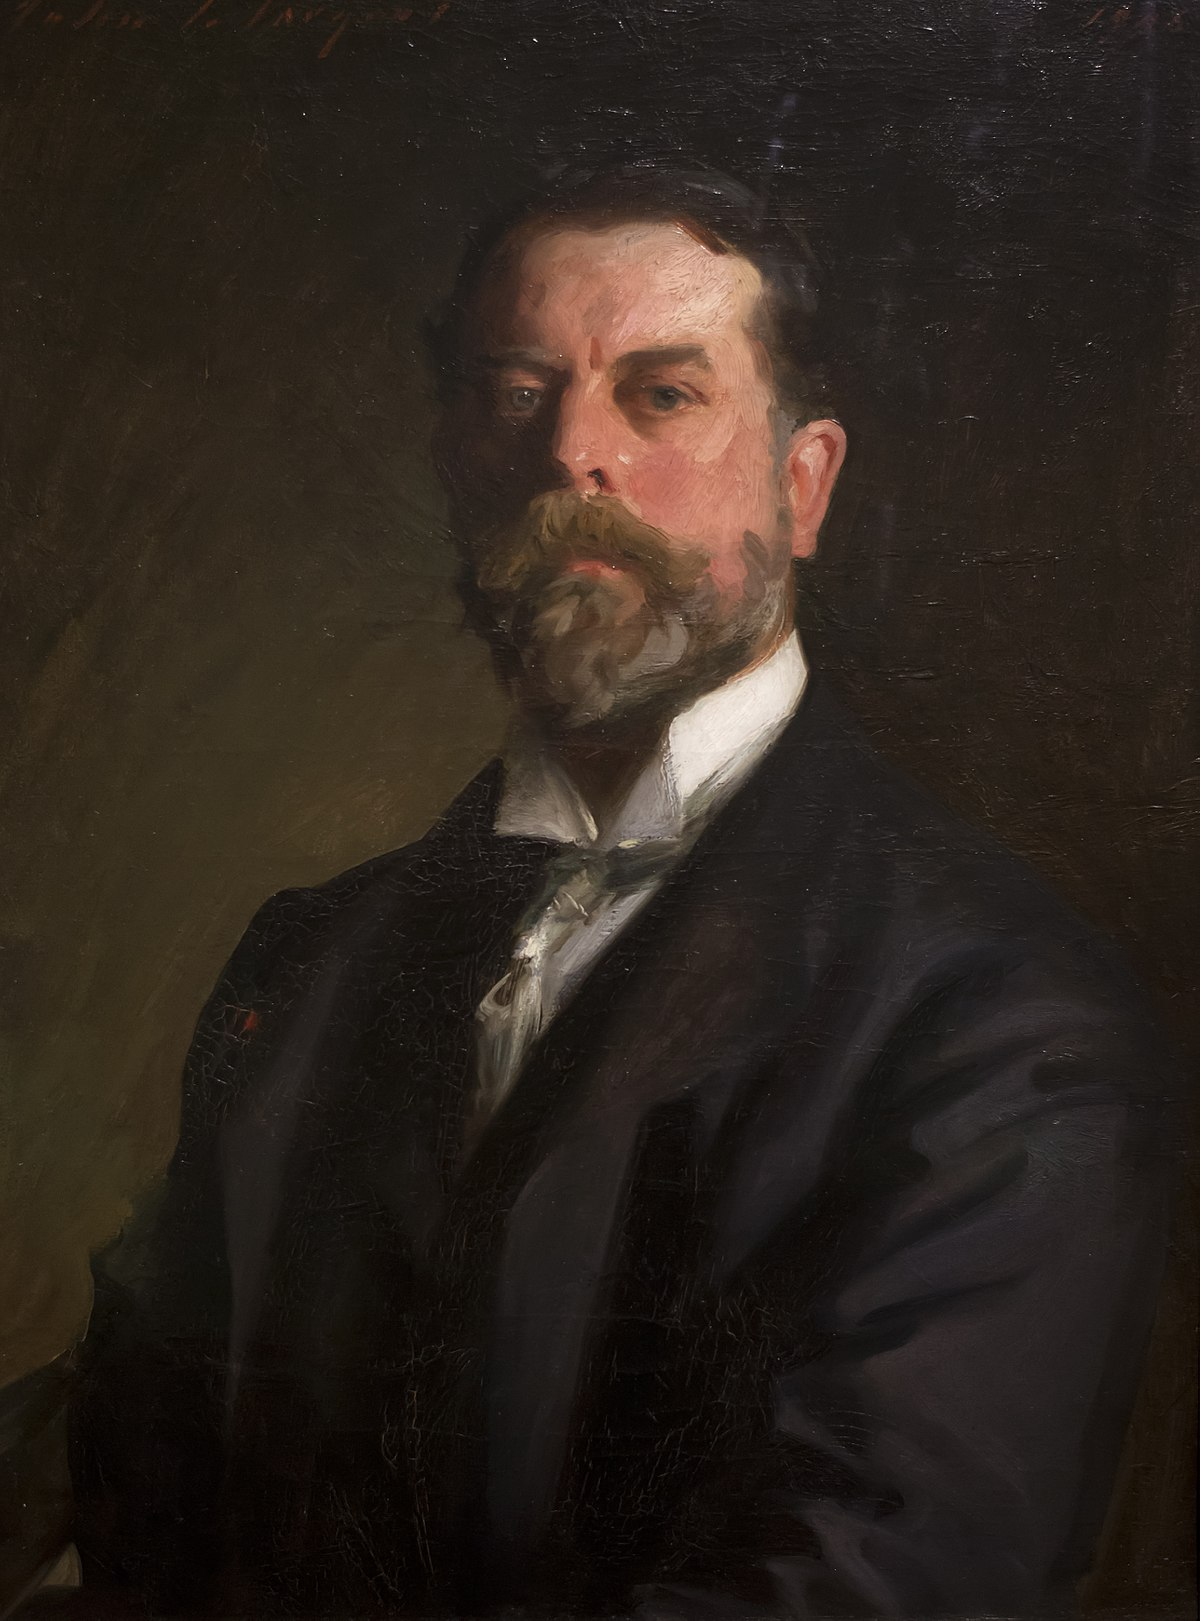 John Singer Sargent Wikipedia - 24 amazing celebrity portraits made using unusual materials